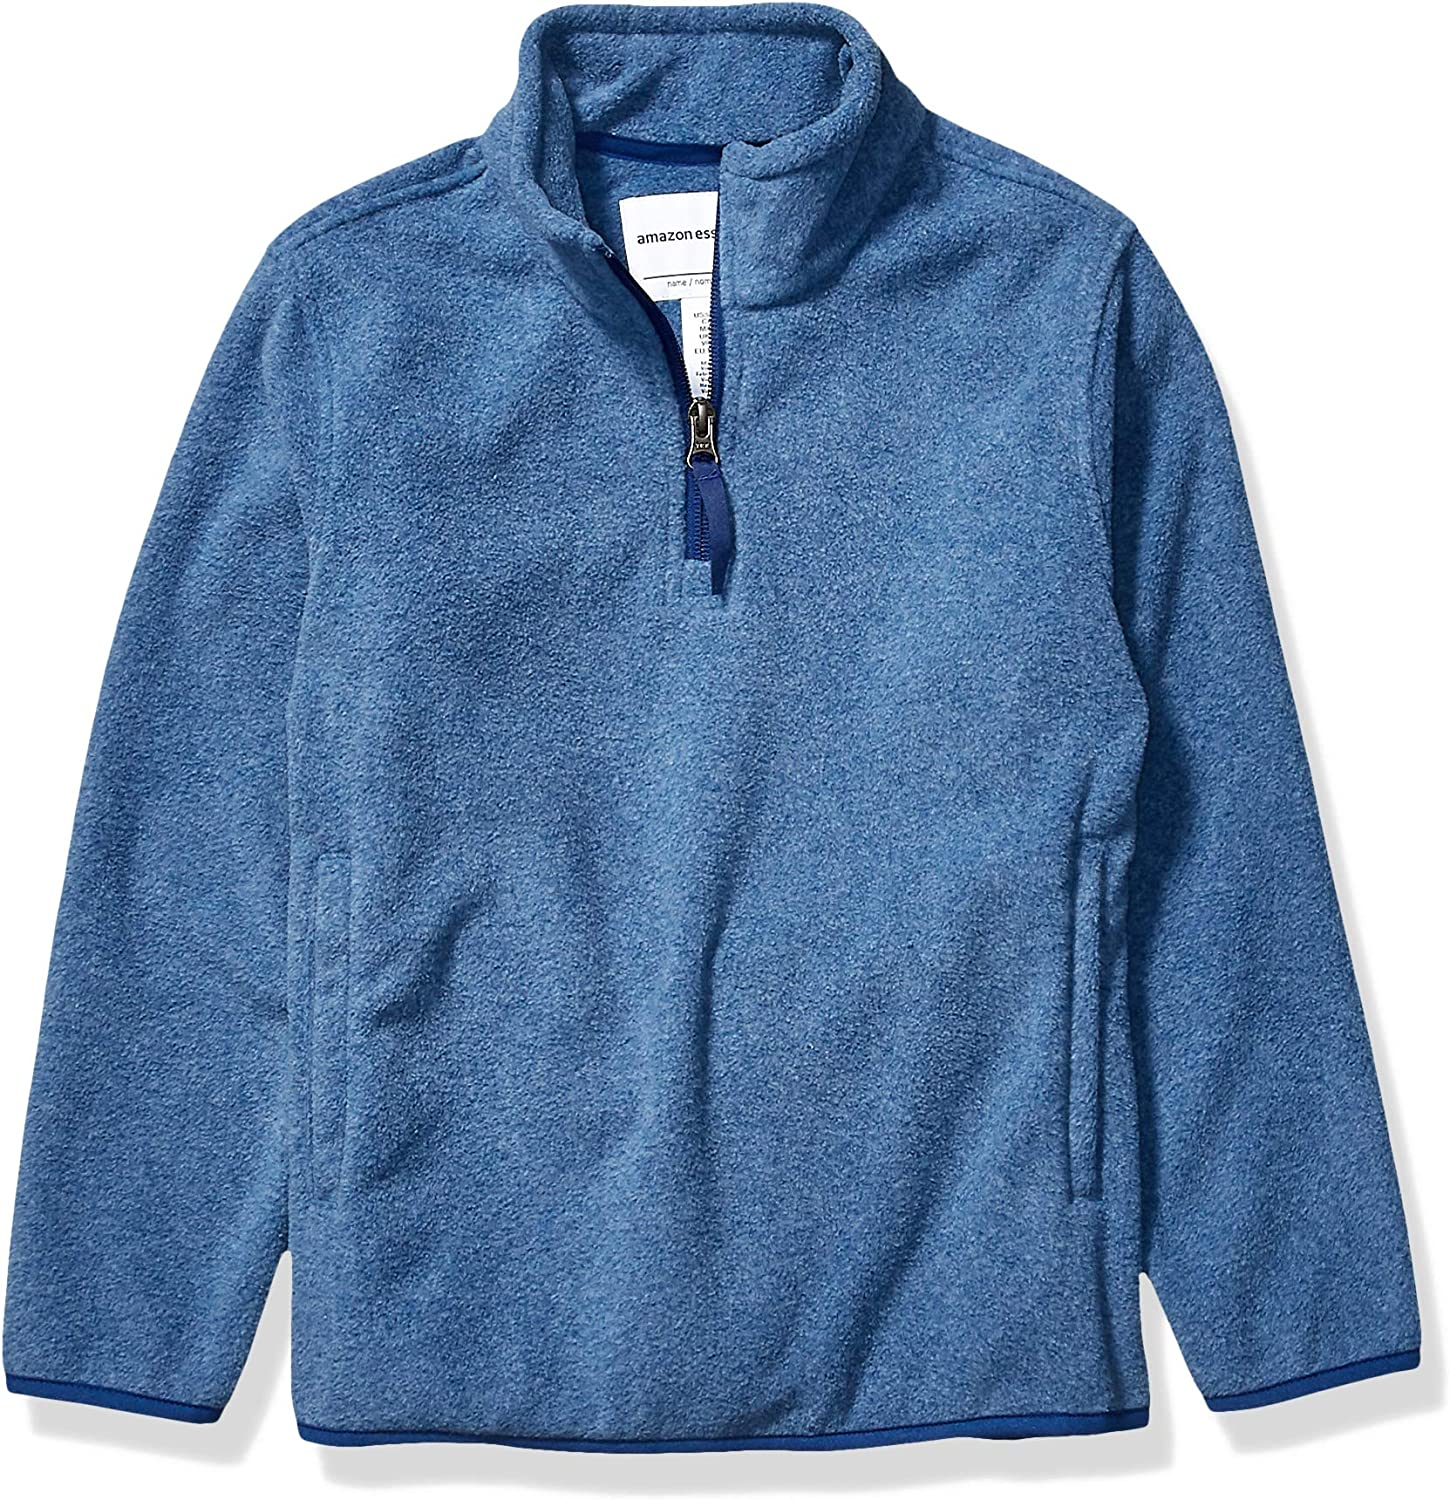 Essentials Boys Polar Fleece Quarter-Zip Pullover Jackets: Clothing